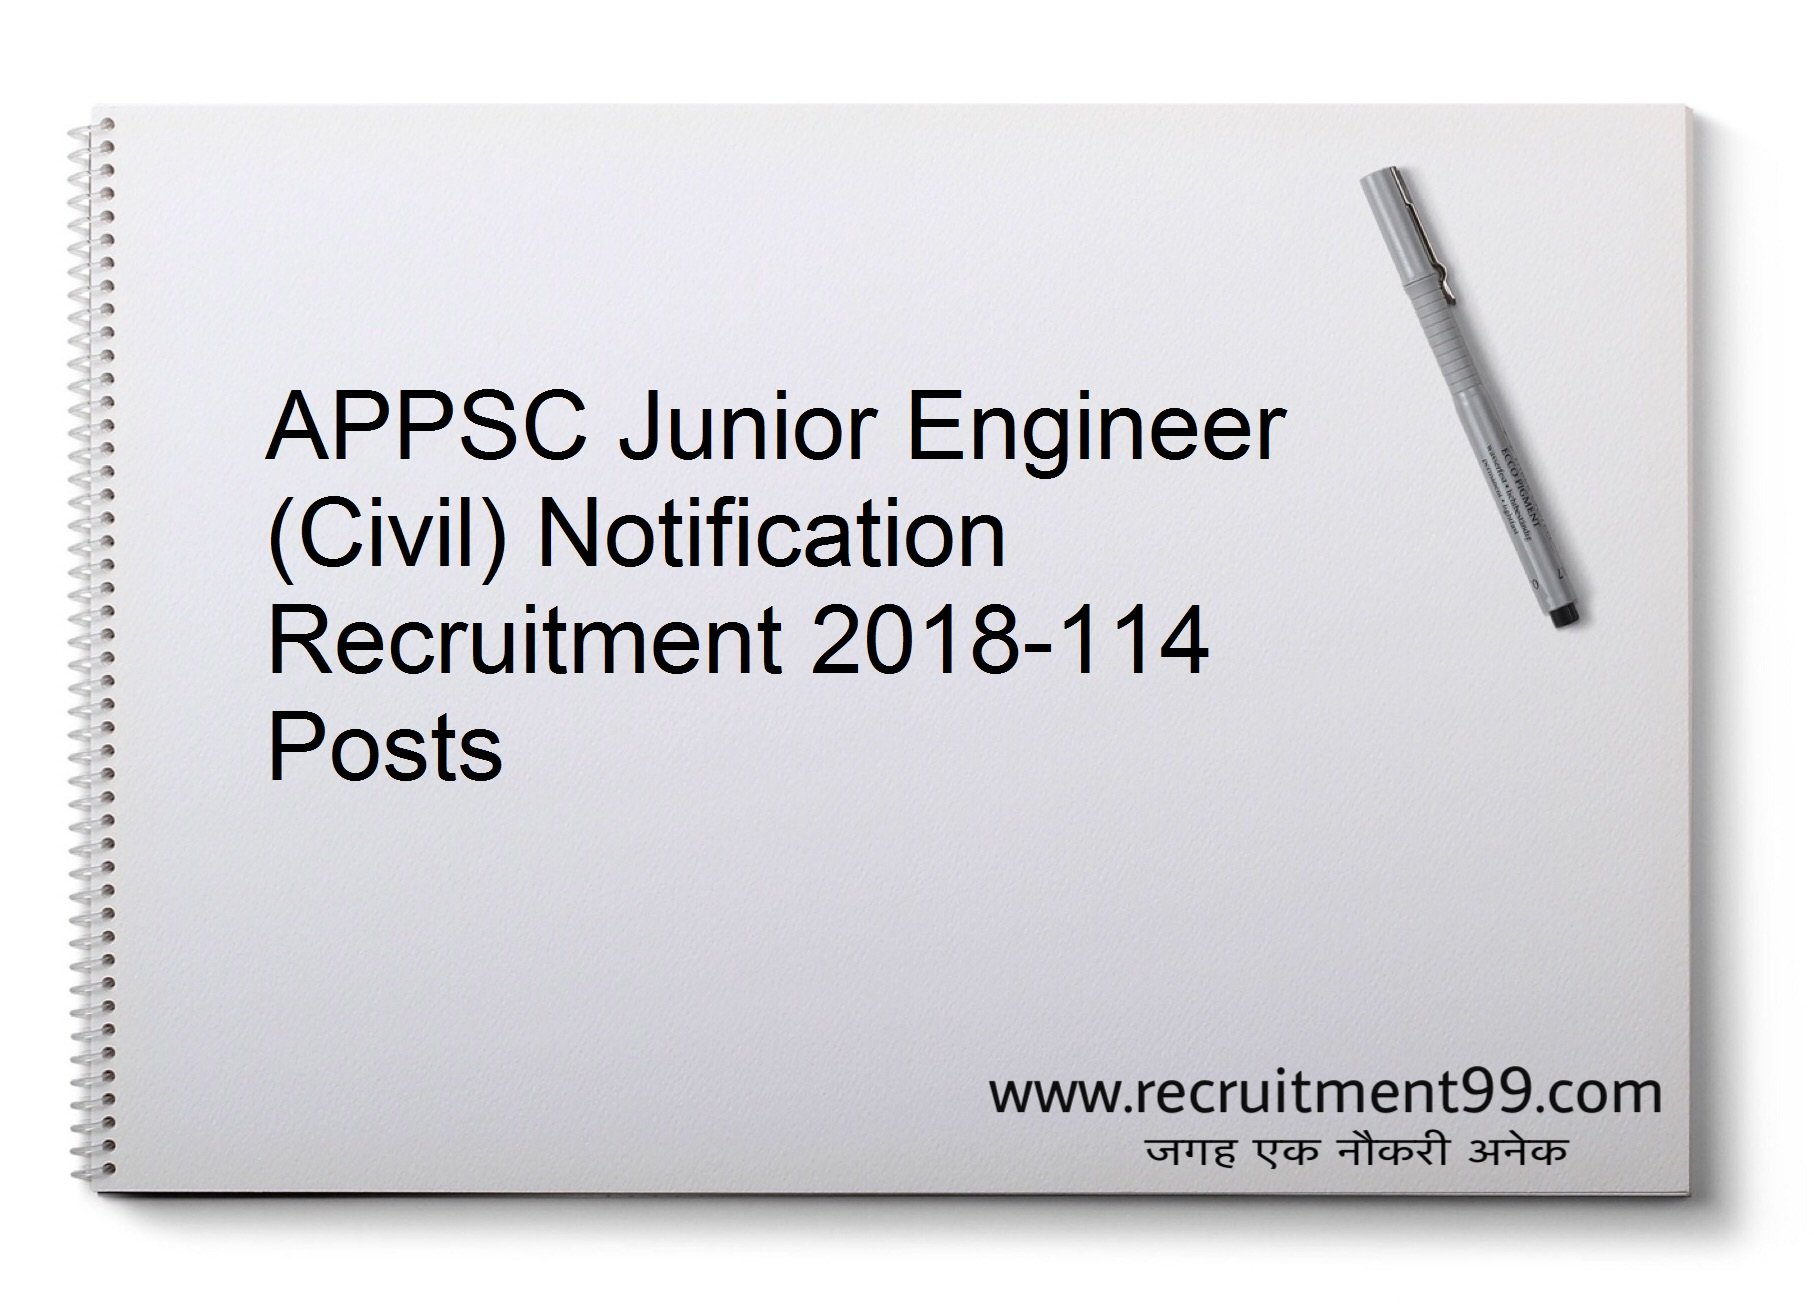 Arunachal Pradesh PSC 114 Junior Engineer Recruitment, Admit card & Result 2018